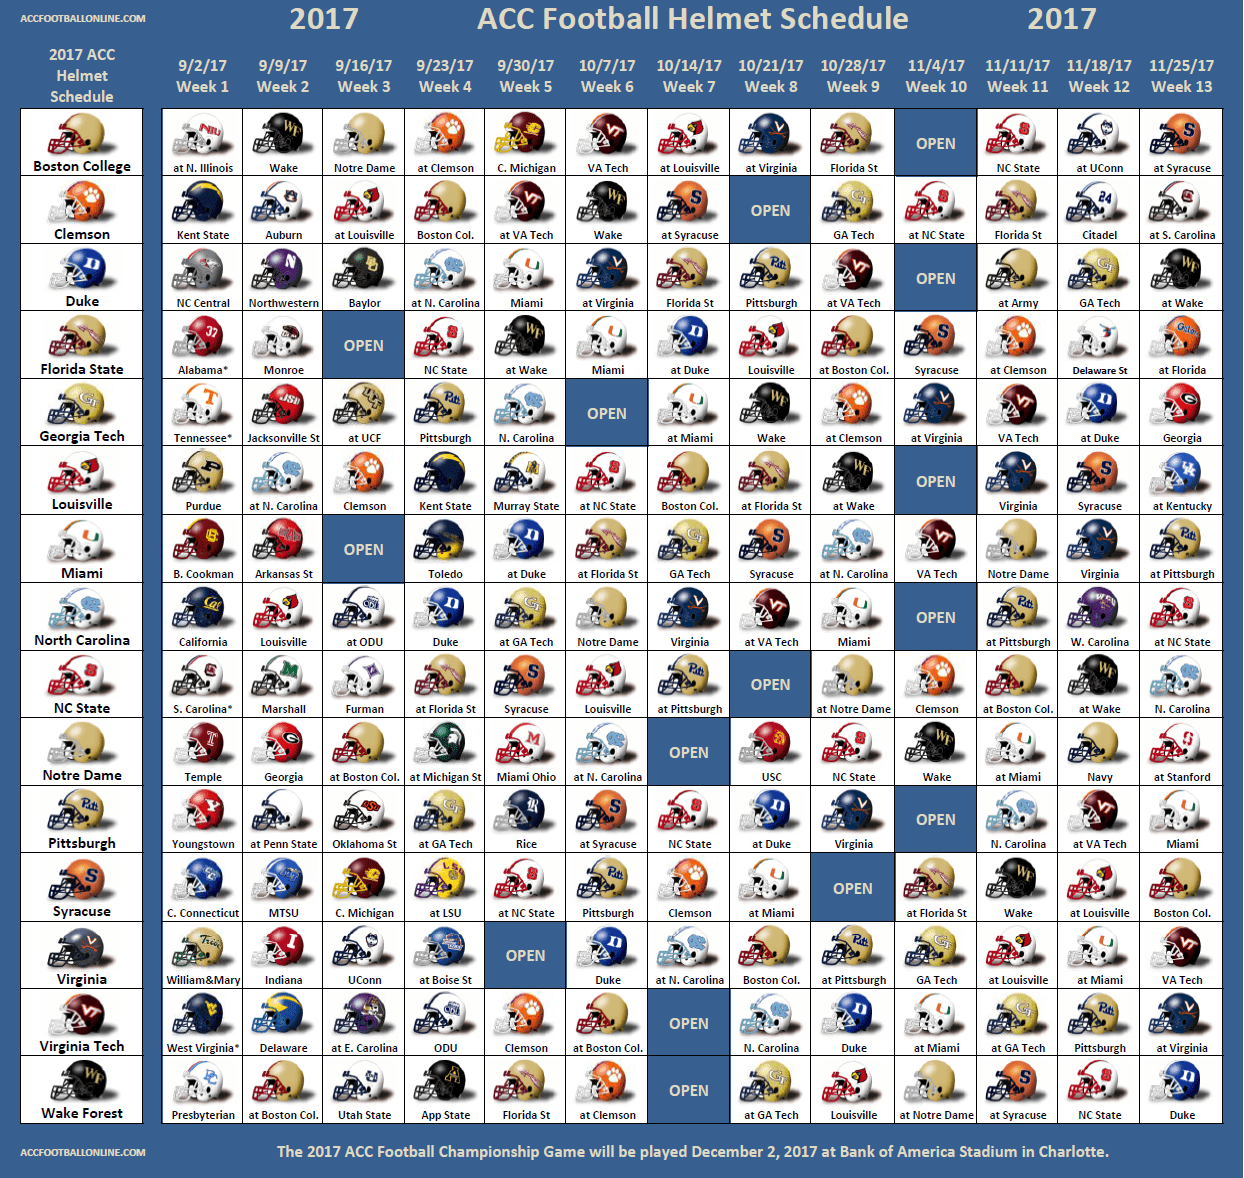 2017 ACC Football Helmet Schedule